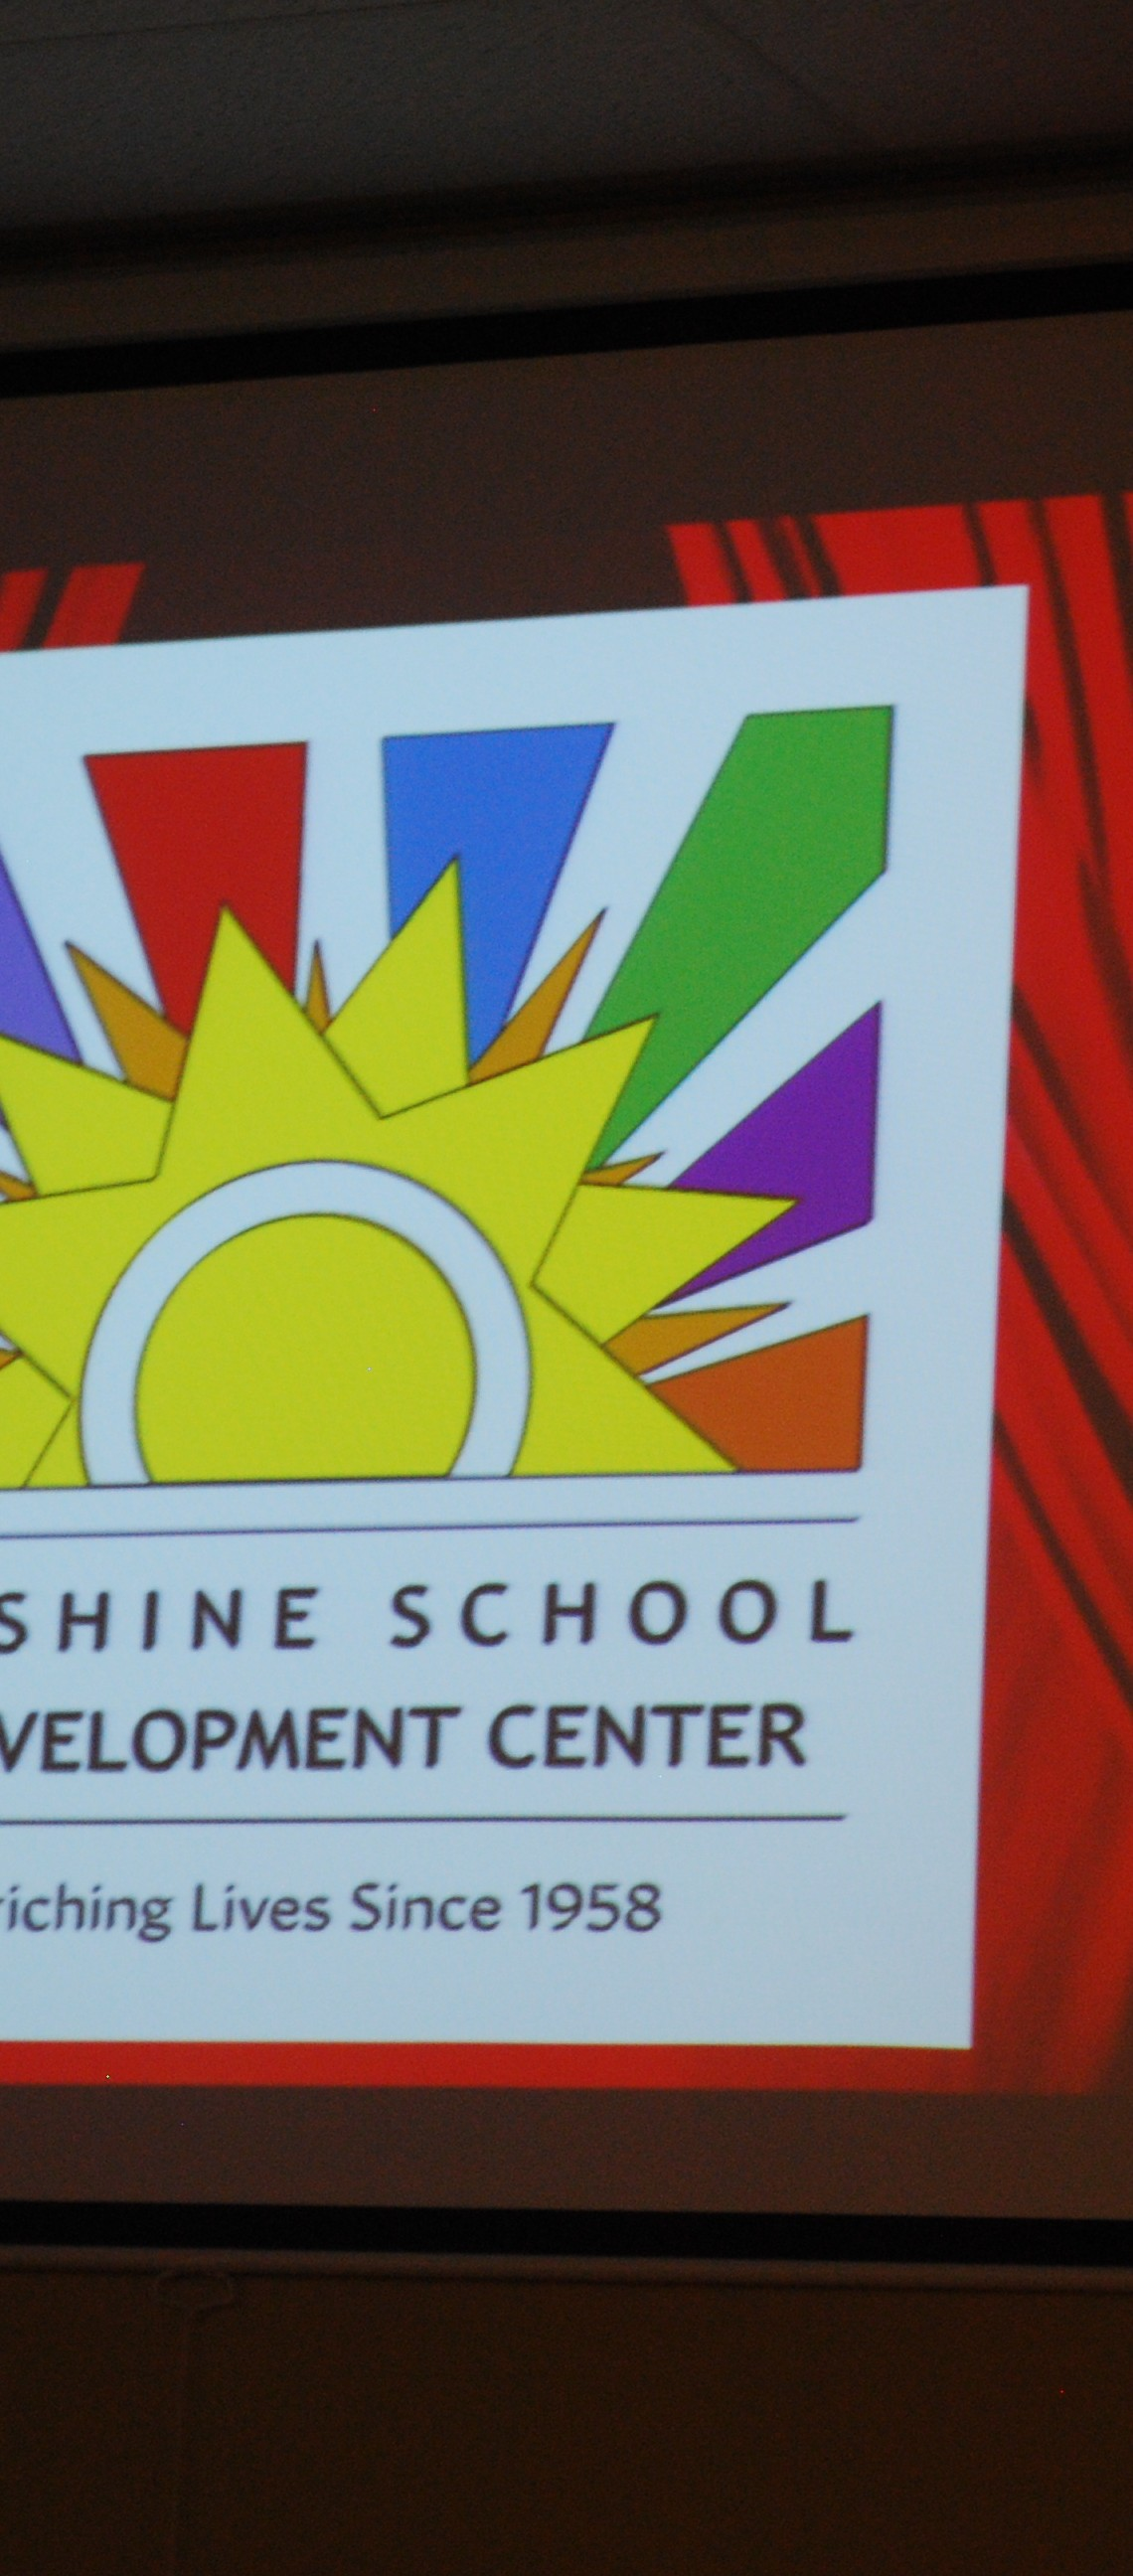 Benton County Sunshine School Announces New Name